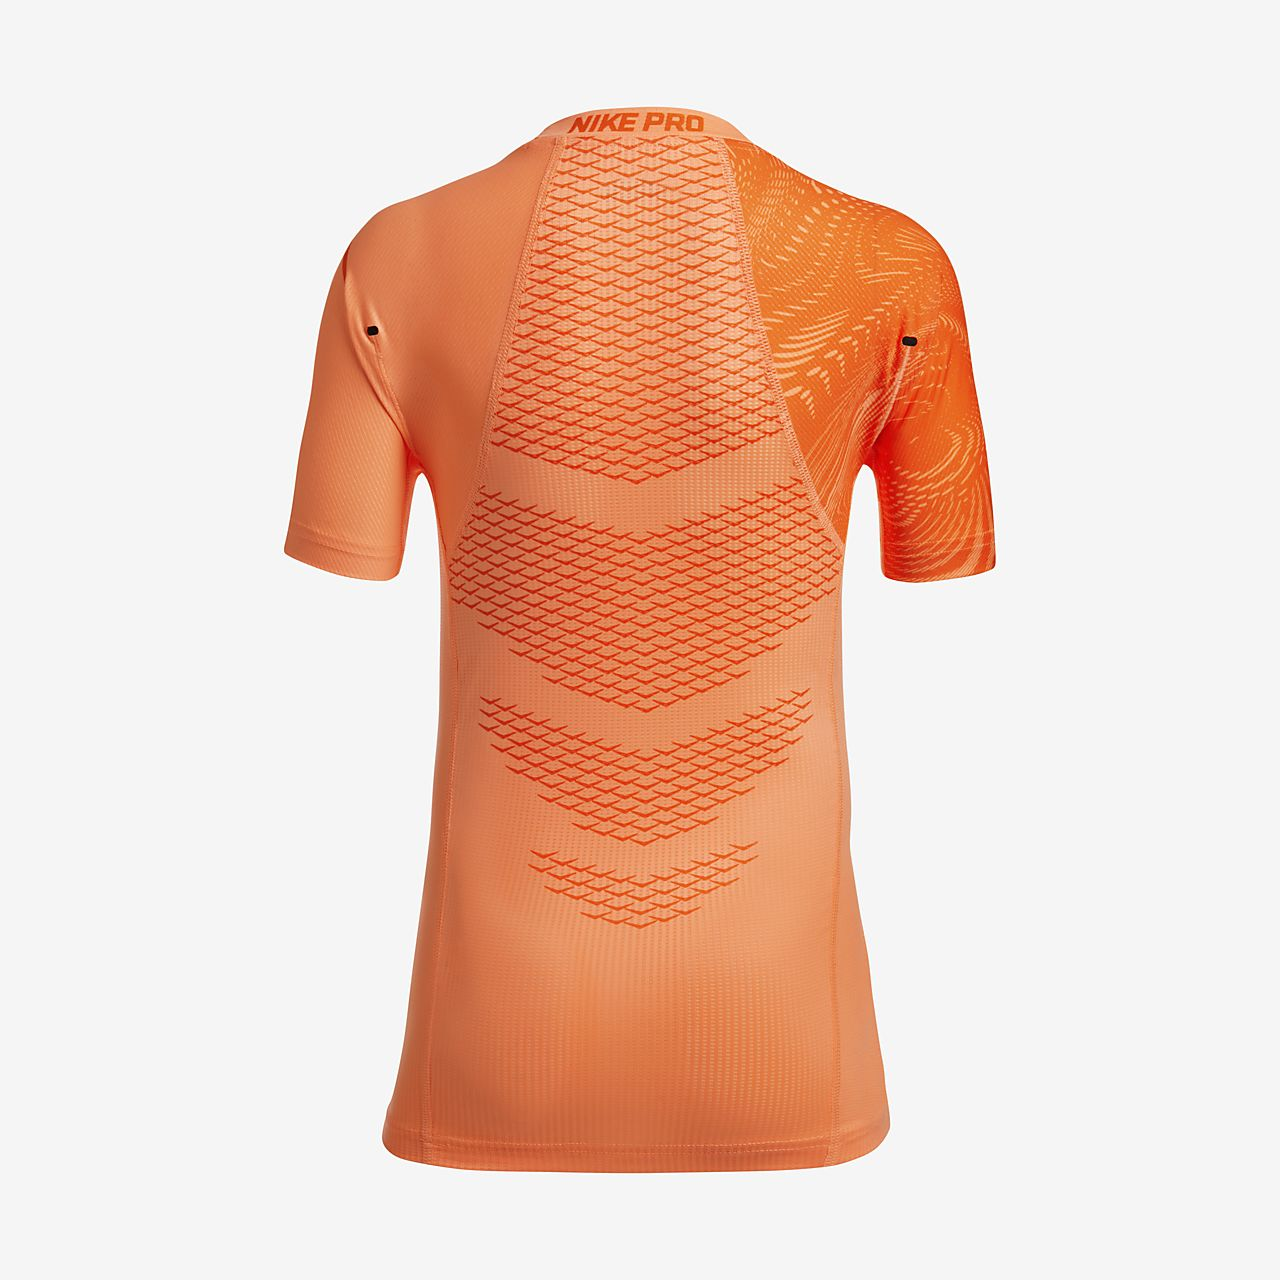 Nike Pro HyperCool Big Kids' Short Sleeve Training Tops Orange